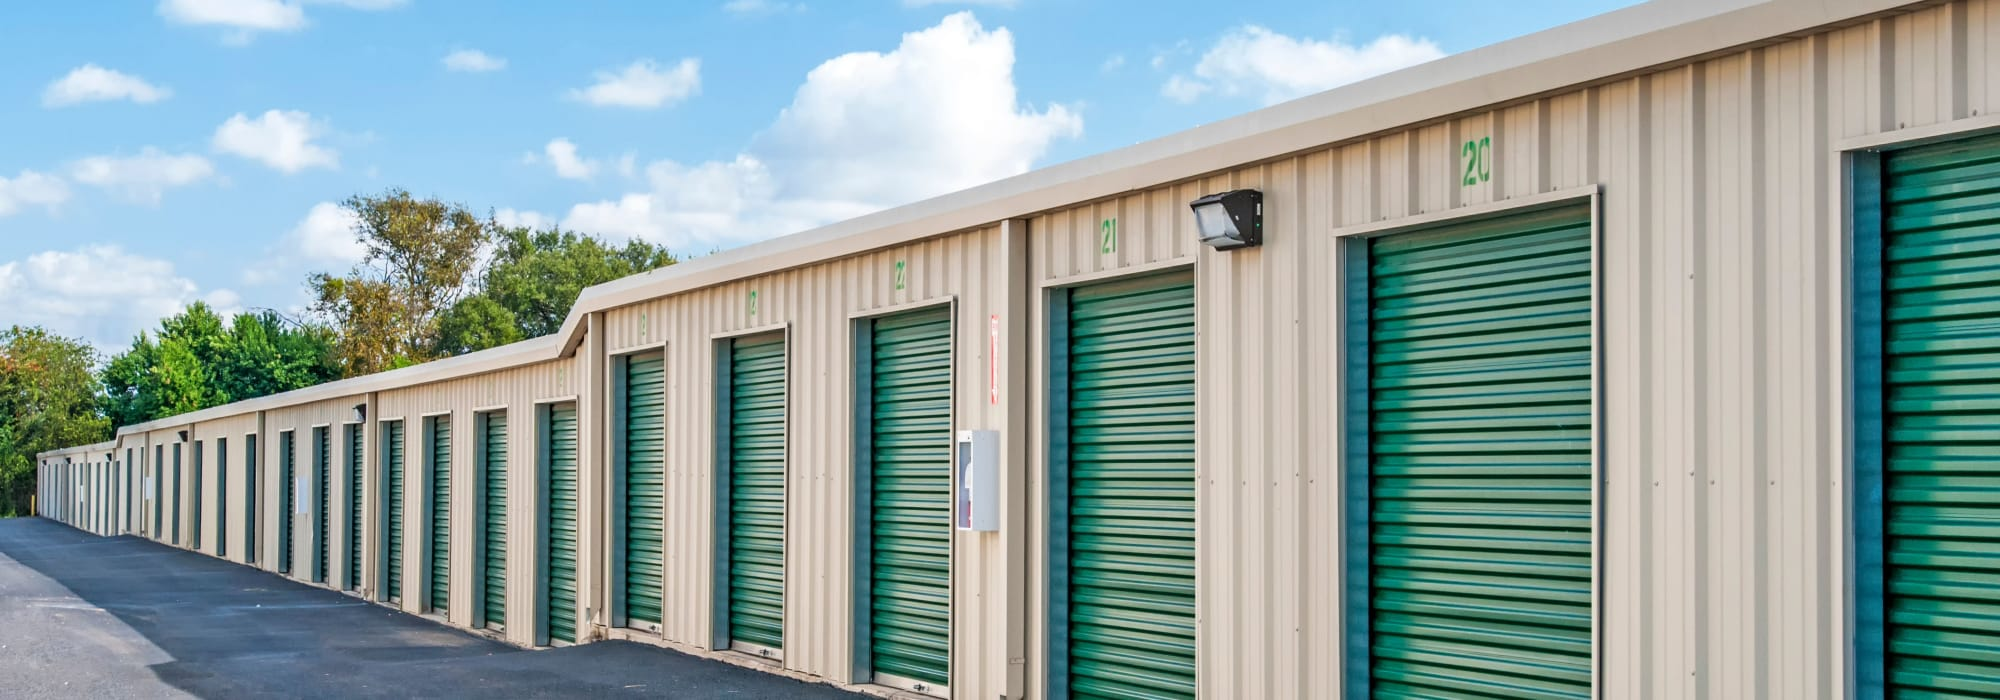 Drive-up storage units available for rent at Lockaway Storage in San Antonio, Texas